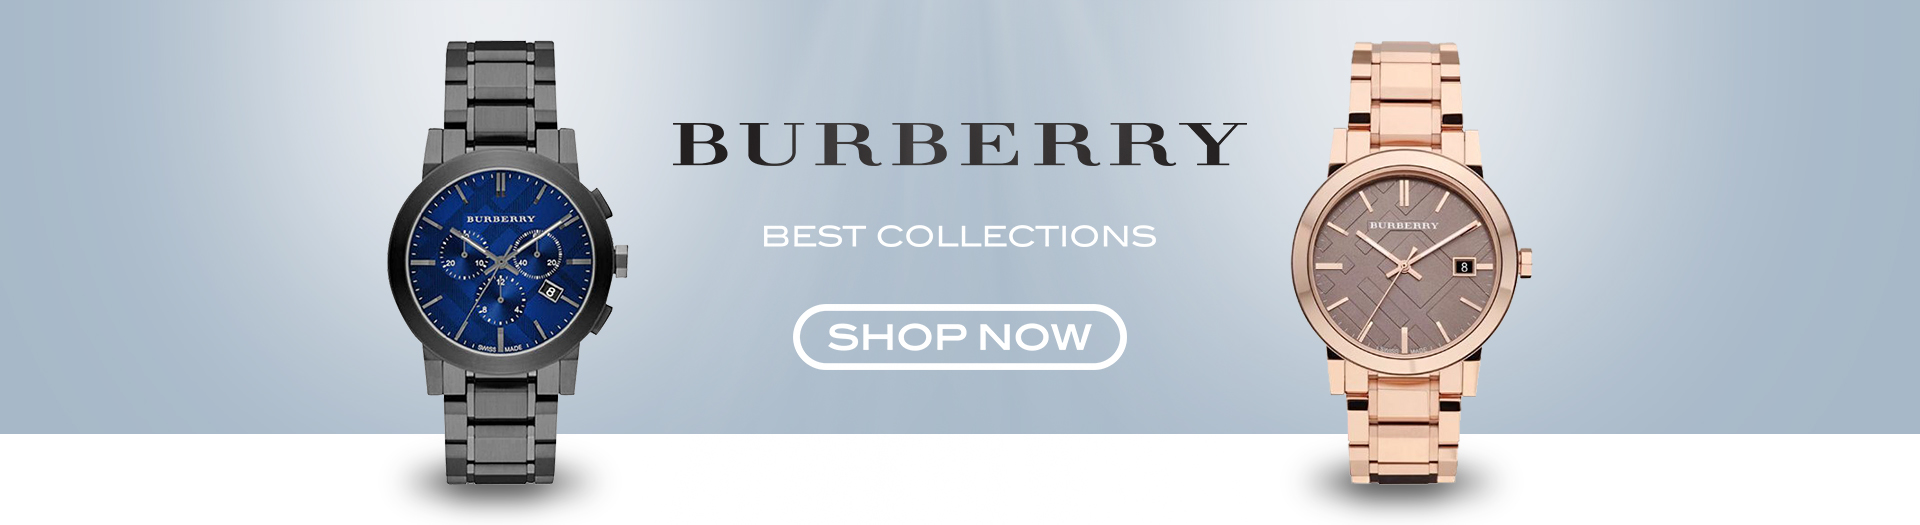 95e6d67fd209 Sourcing Watches Armani Watches Tag Heuer Watches Gucci Watches Burberry  Watches ...